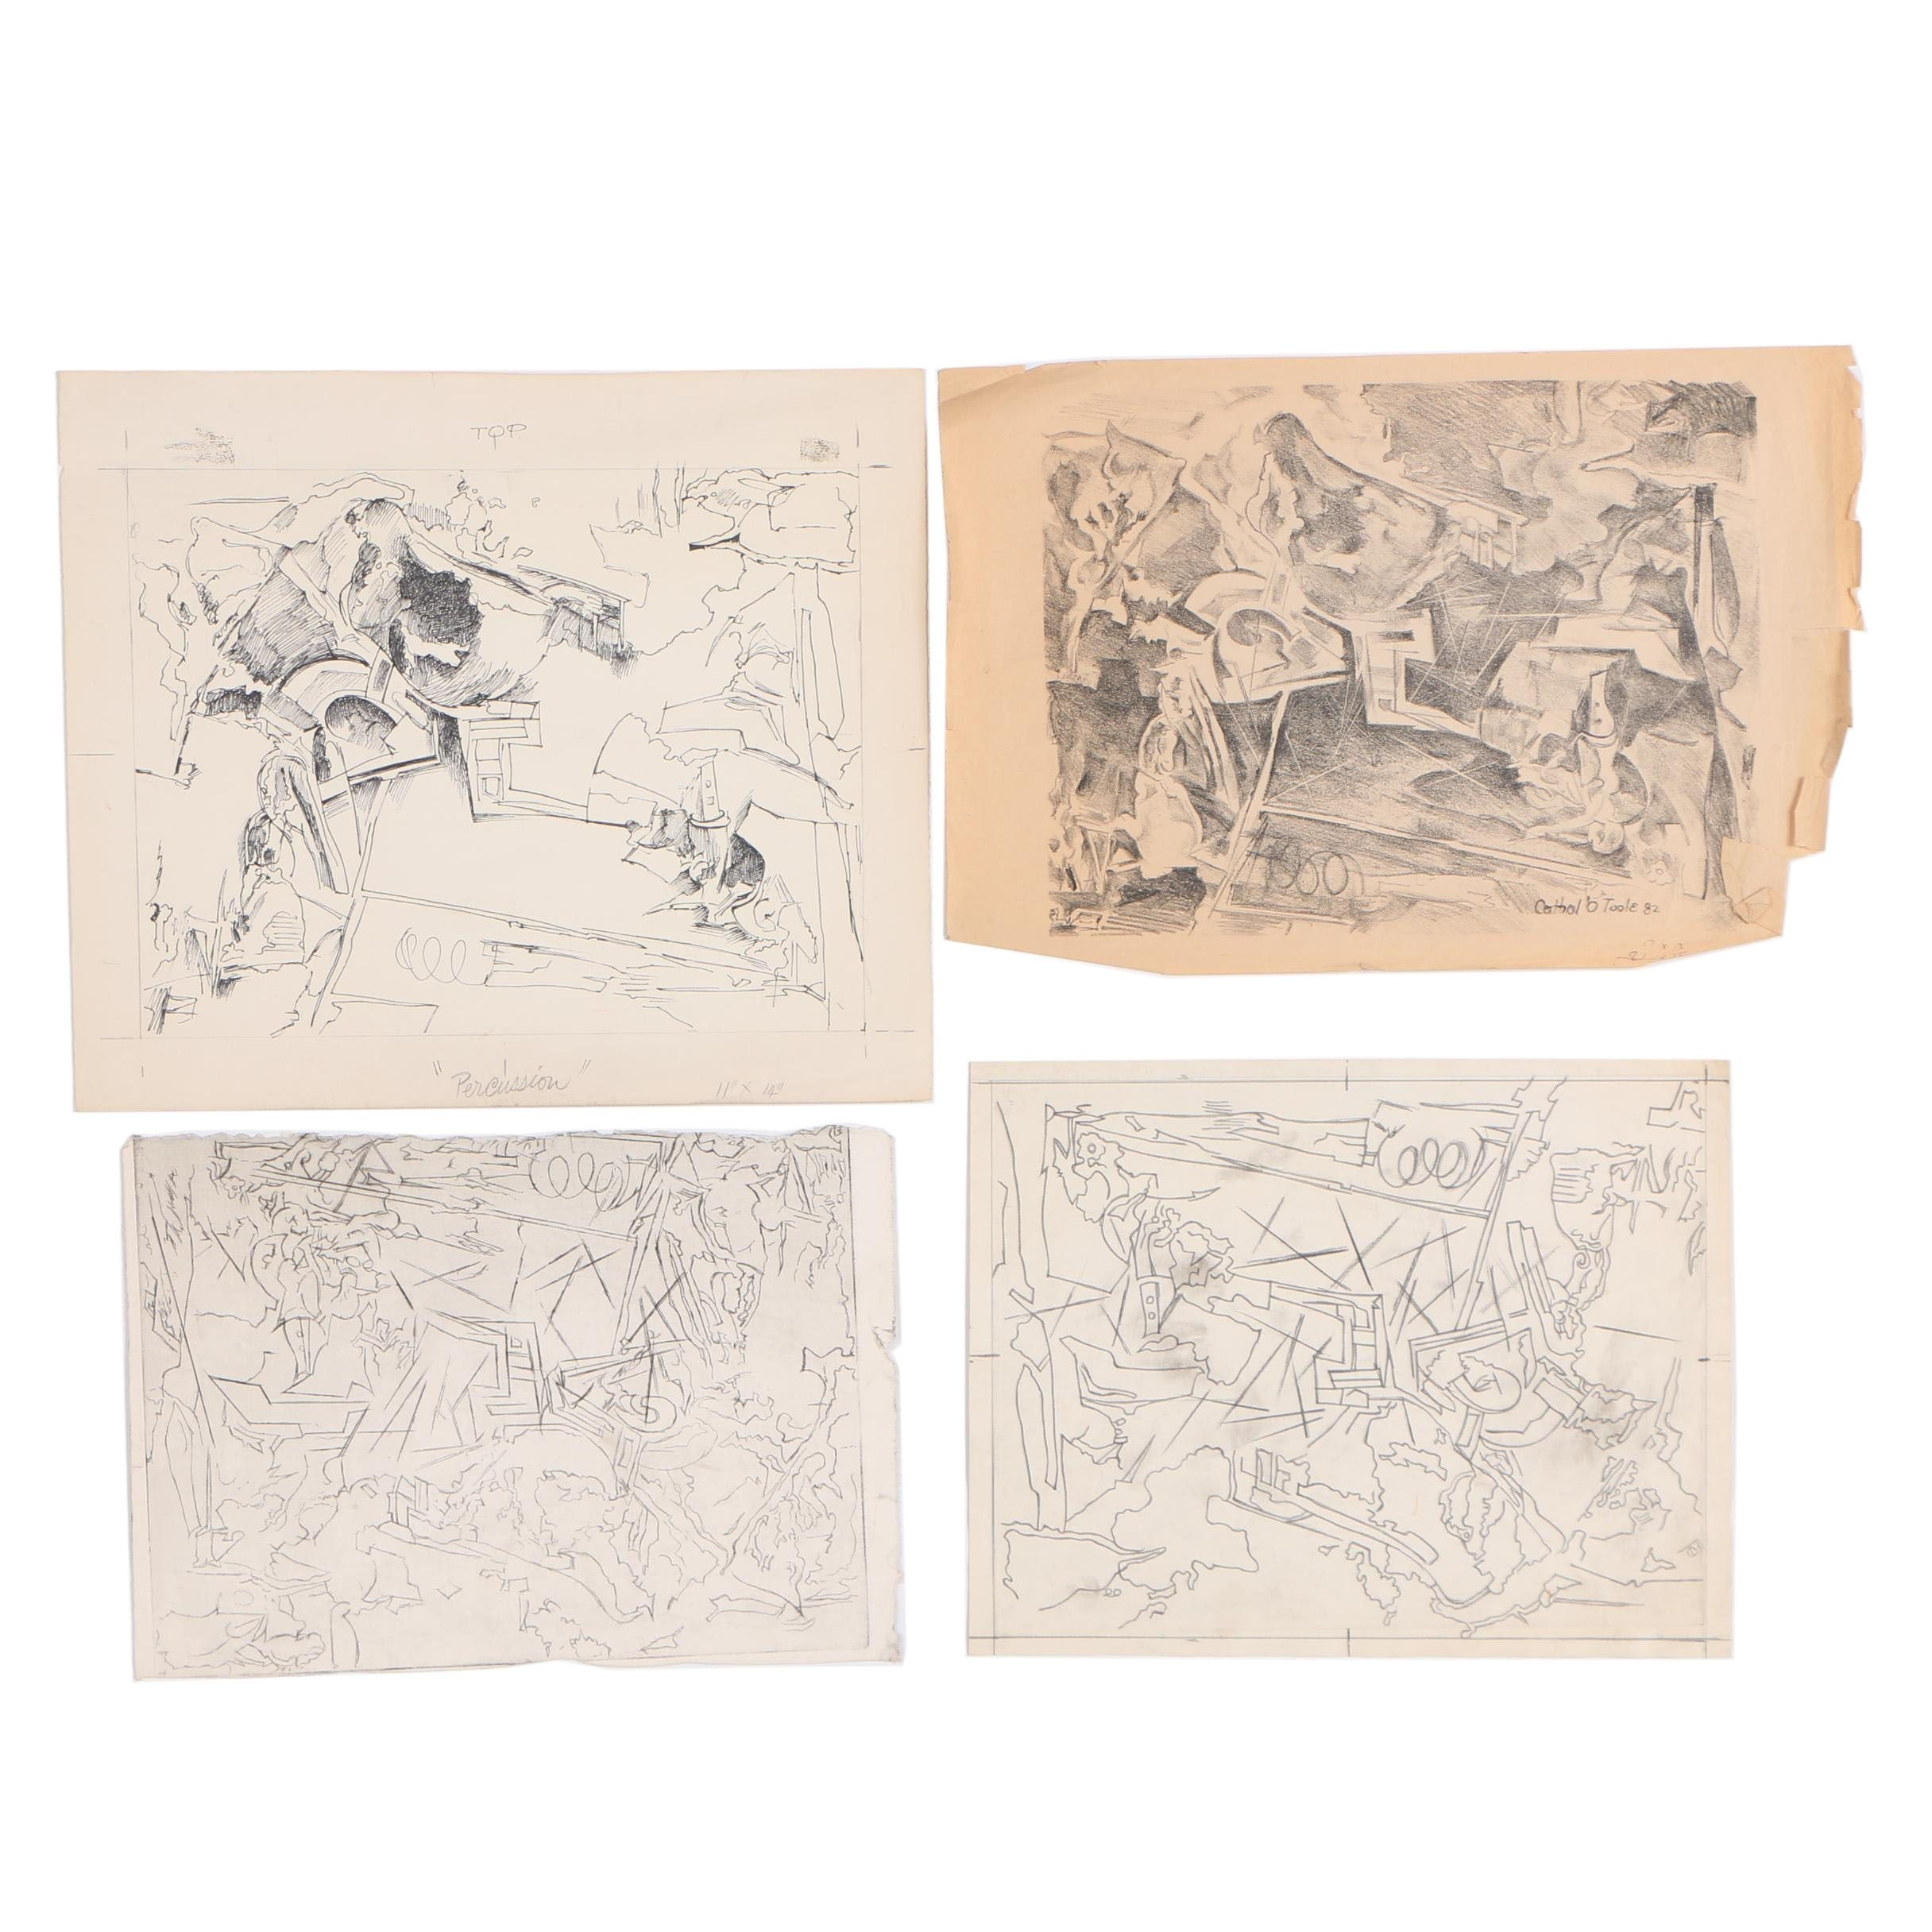 Cathal Brendan O'Toole Drawings and Prints